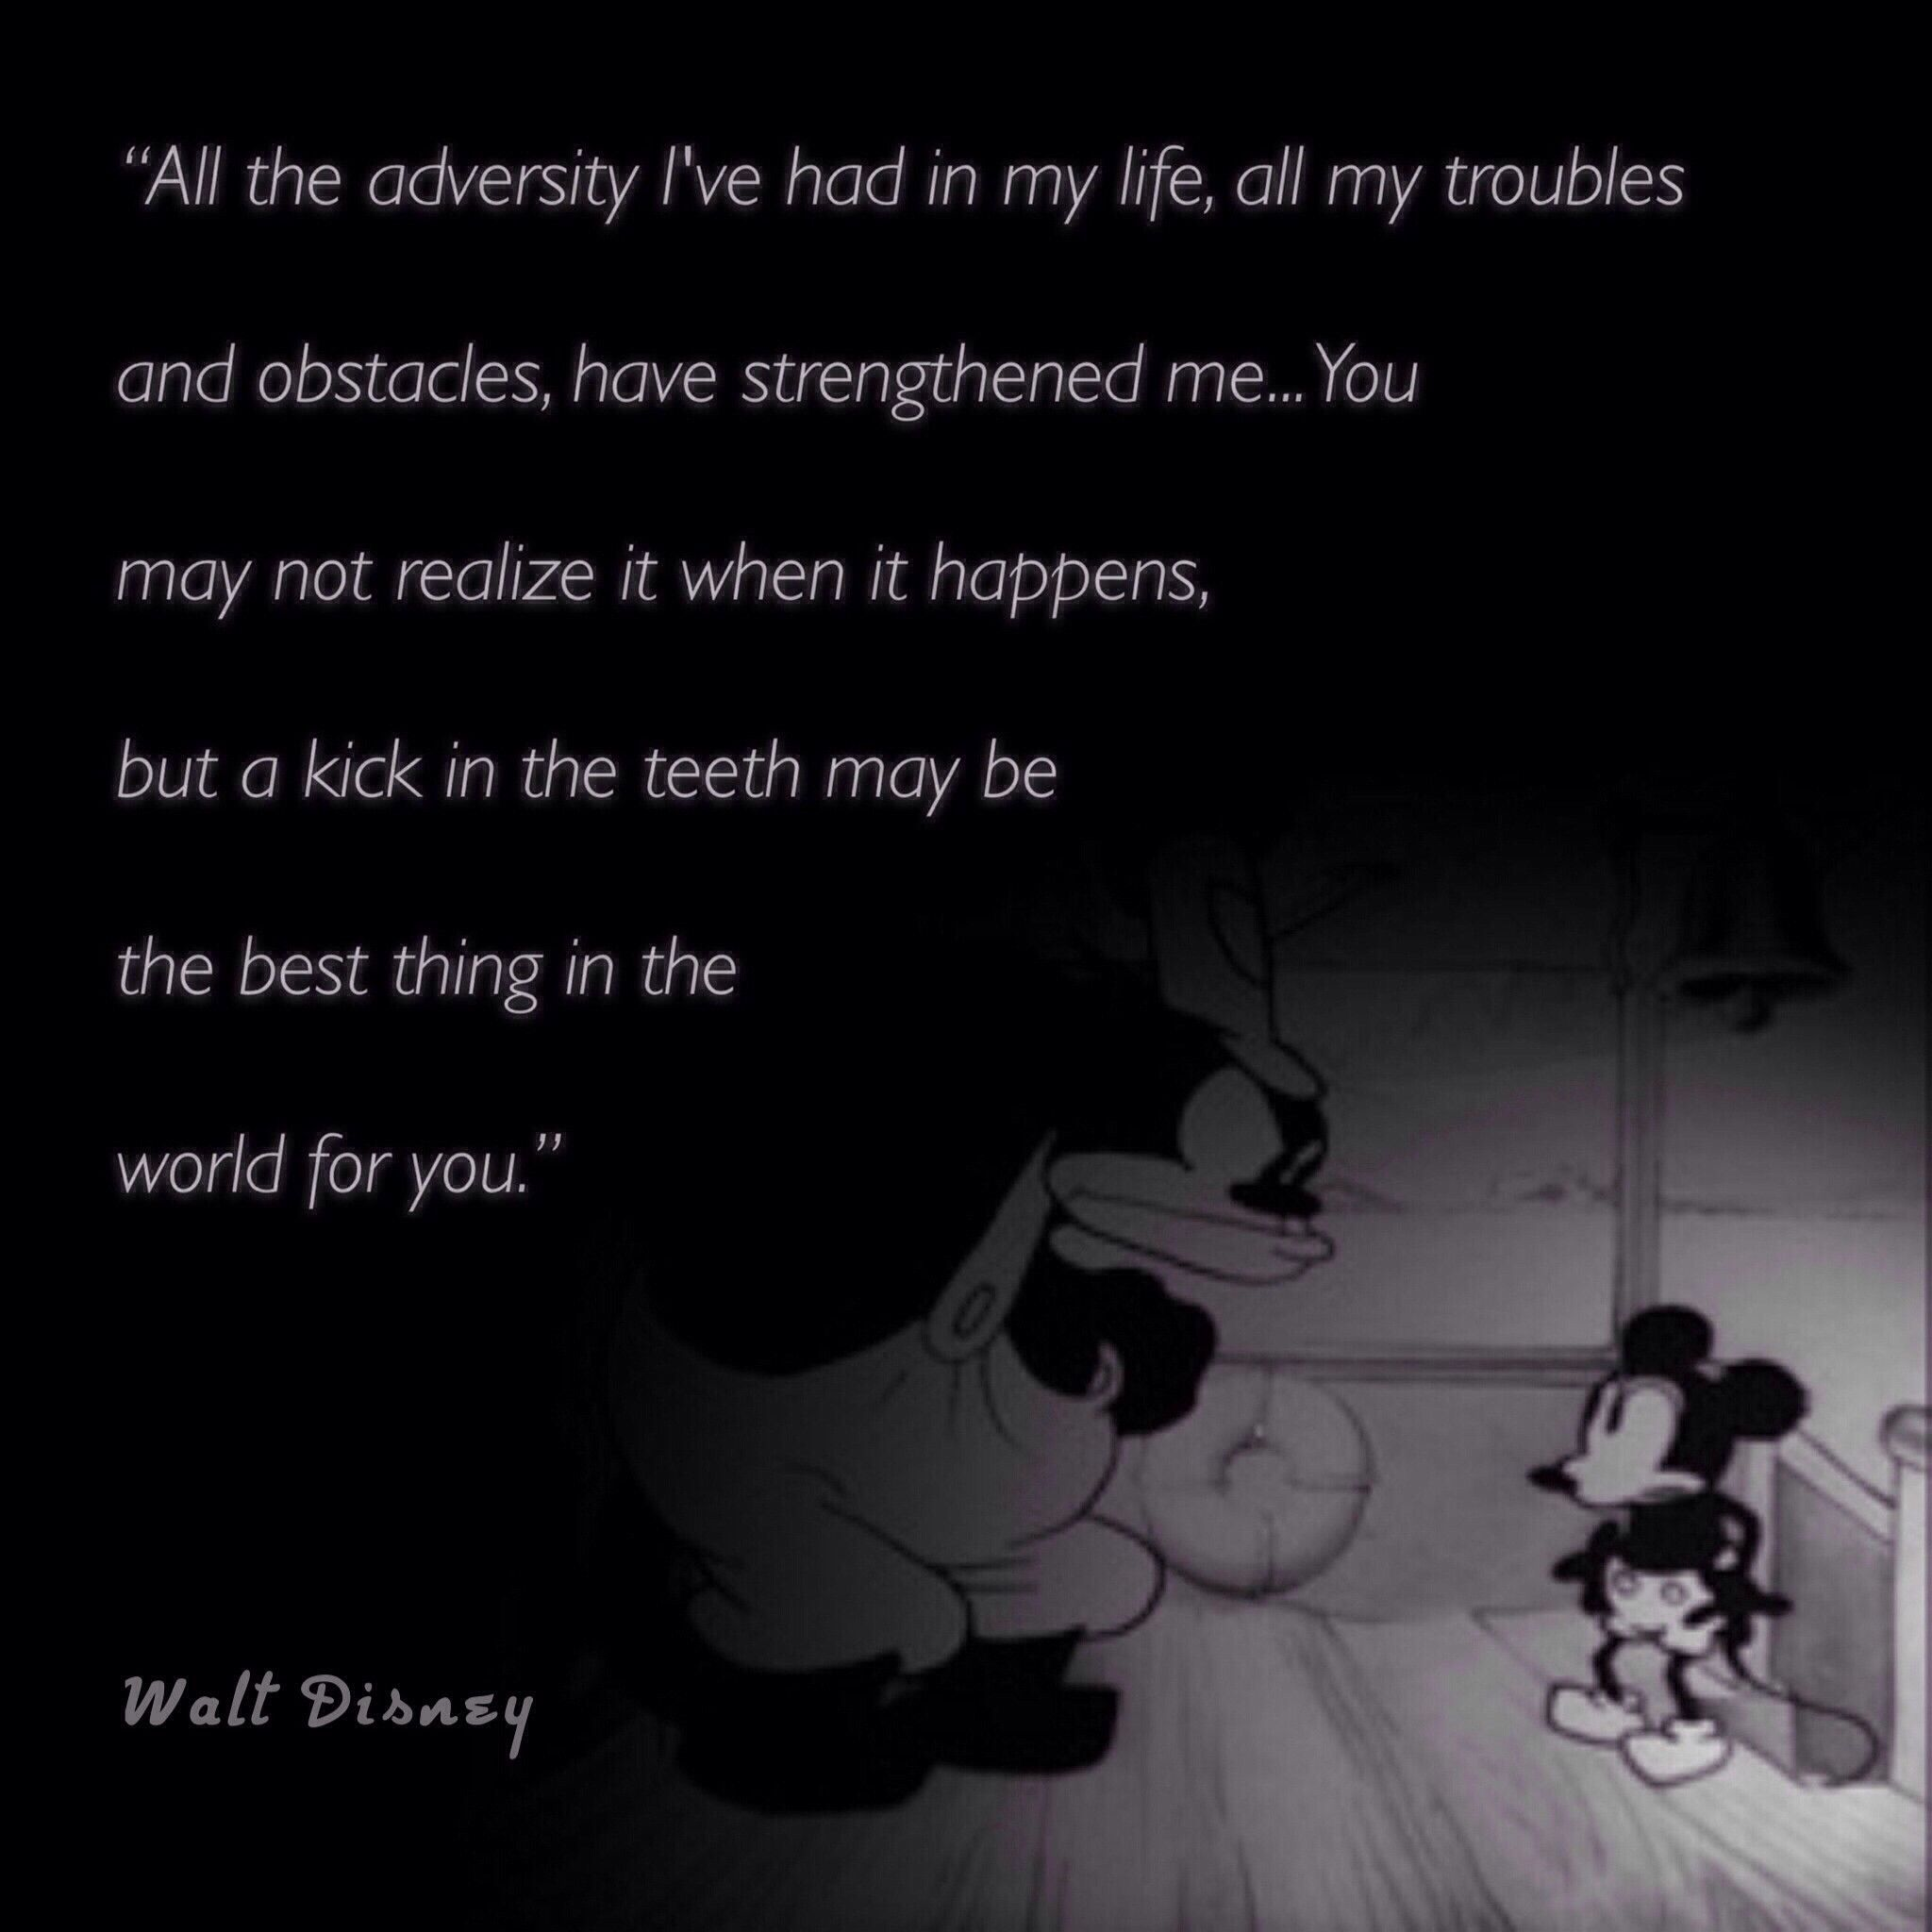 """Walt Disney Quotes About Life All My Obstacles Have Strengthened Me"""" Walt Disney  Inspiration"""